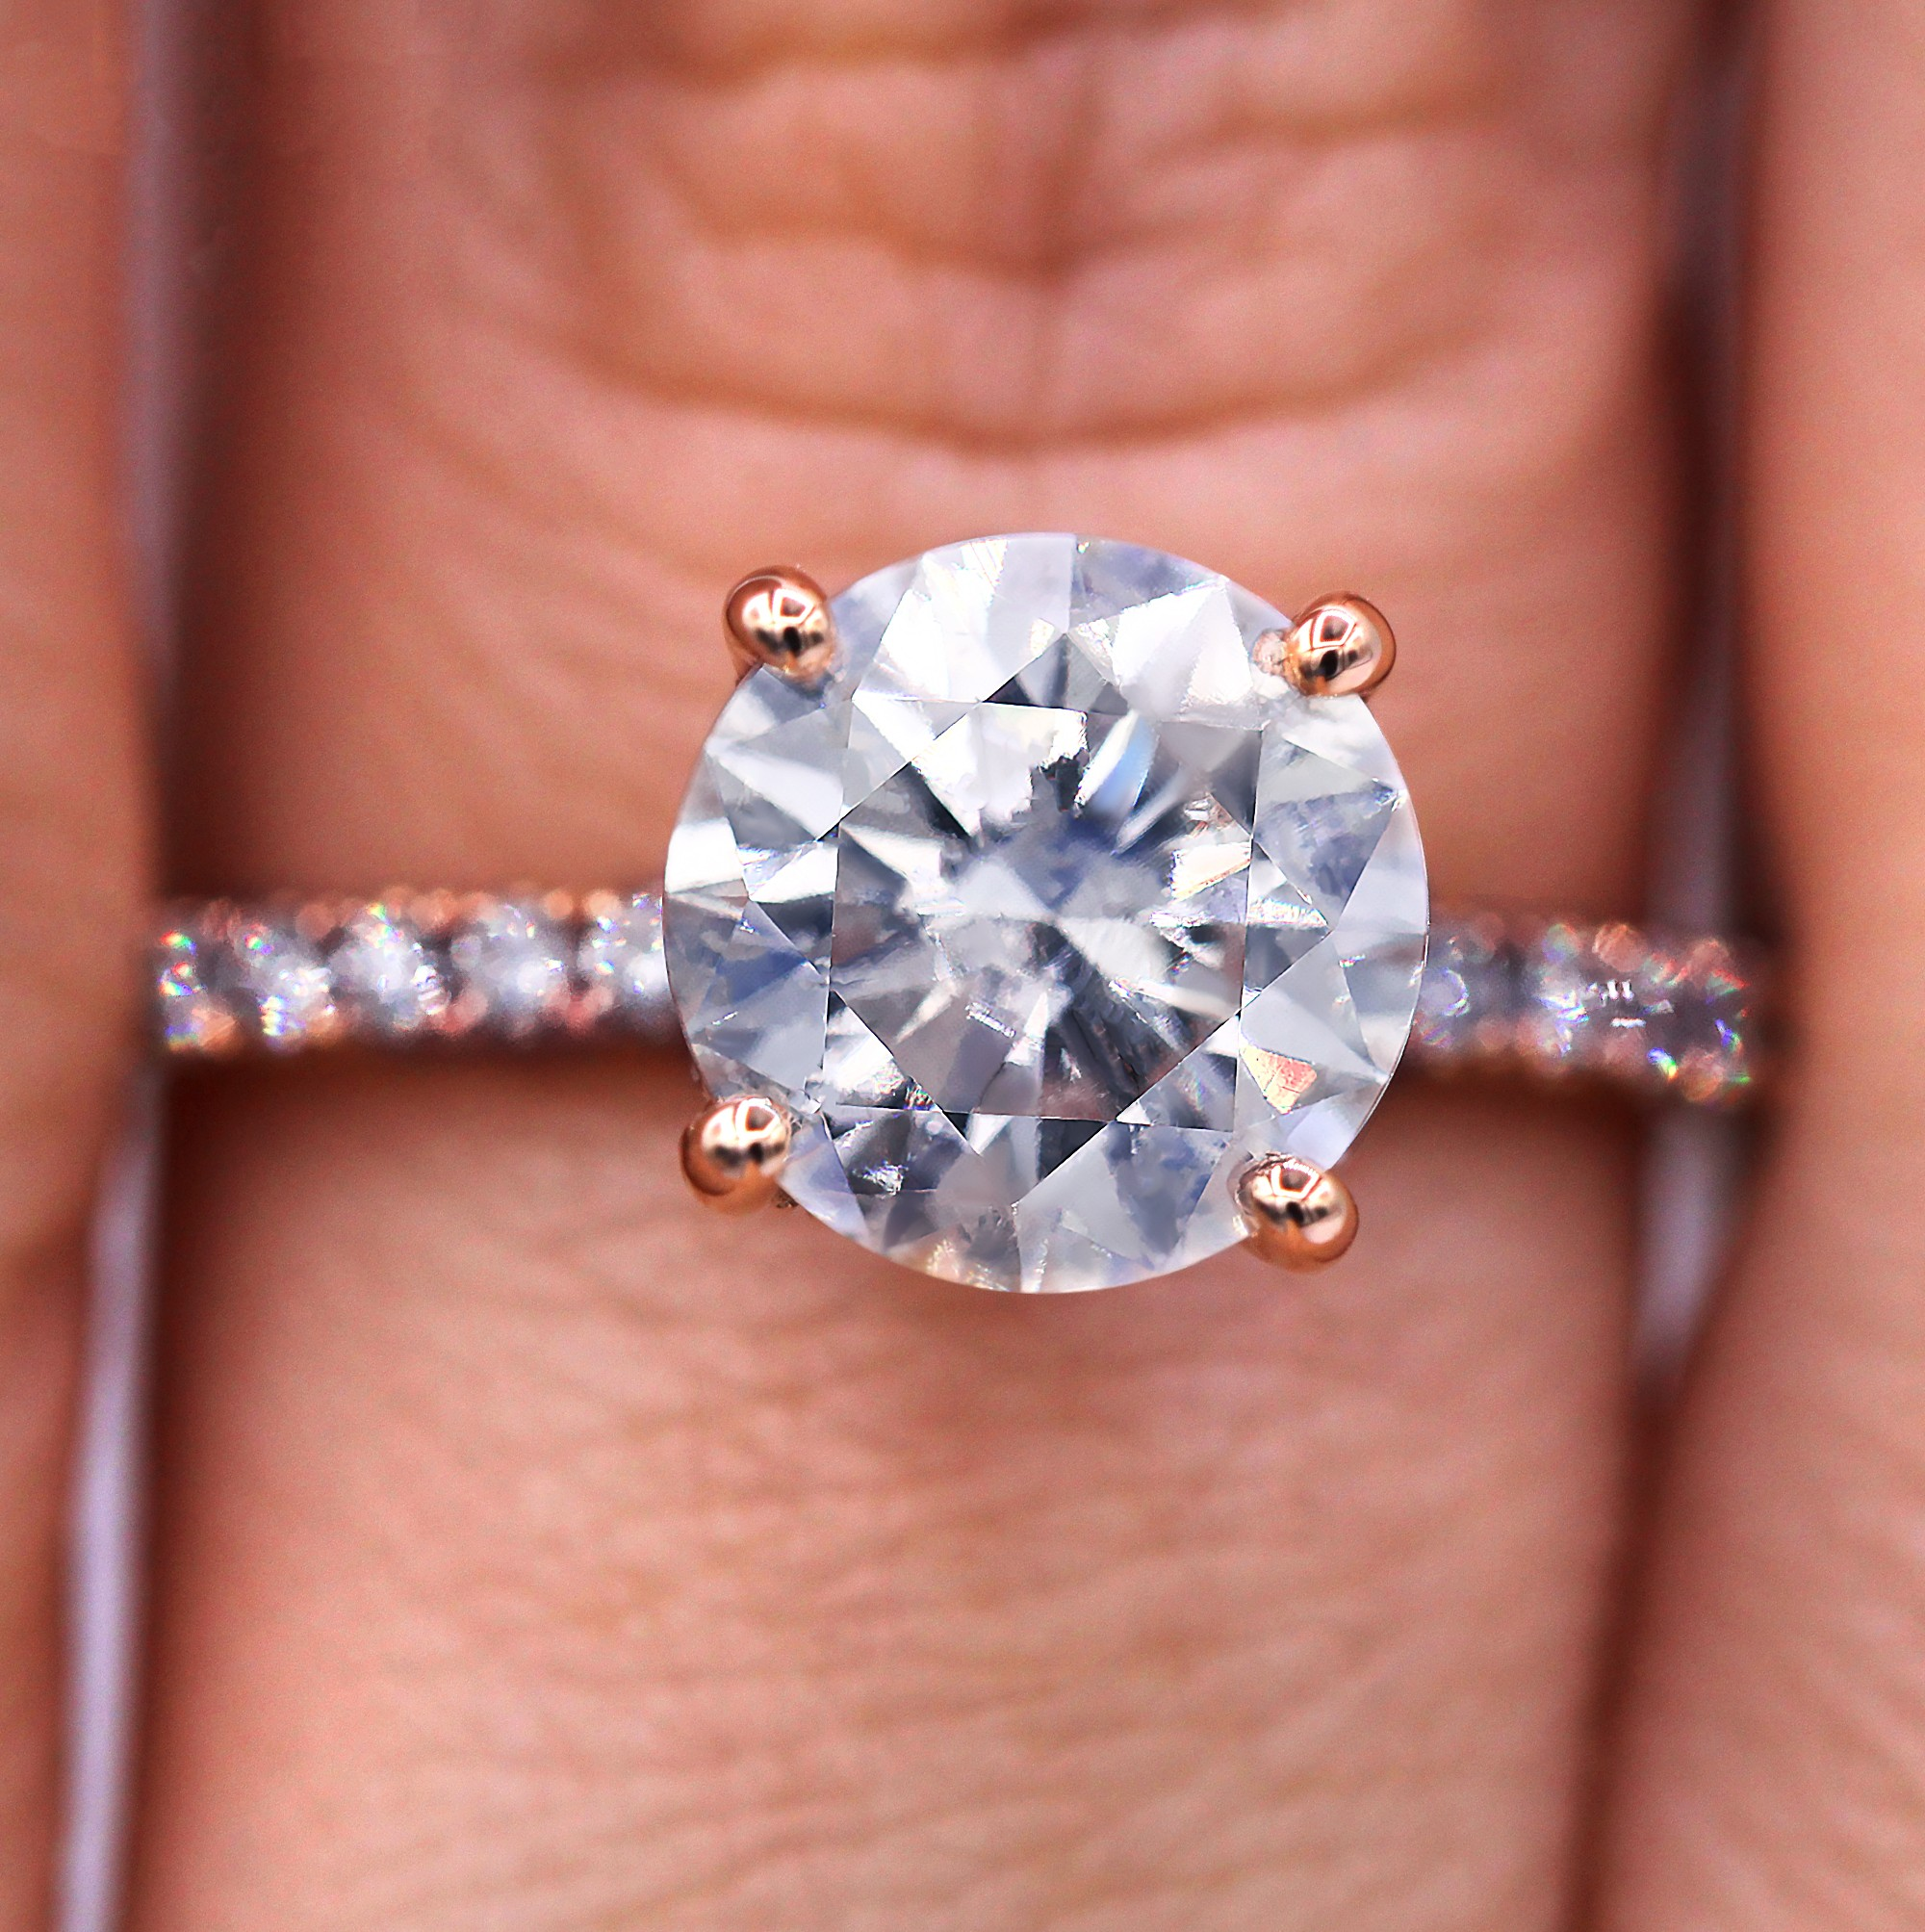 Delicate 2.00 carat round cut diamond engagement ring